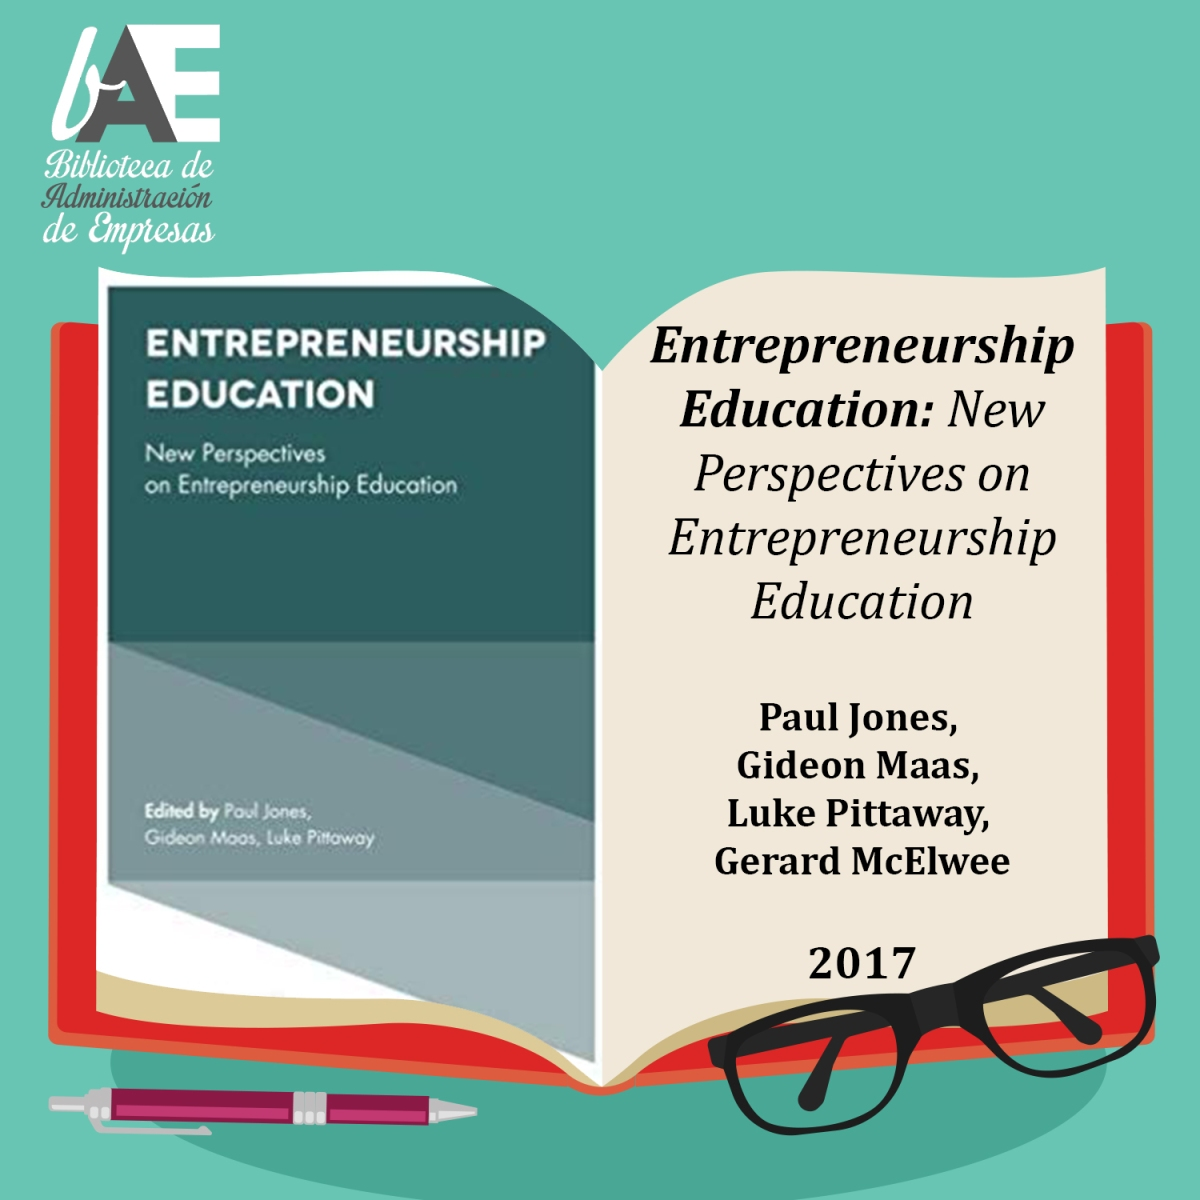 Entrepreneurship Education: New Perspectives on Entrepreneurship Education